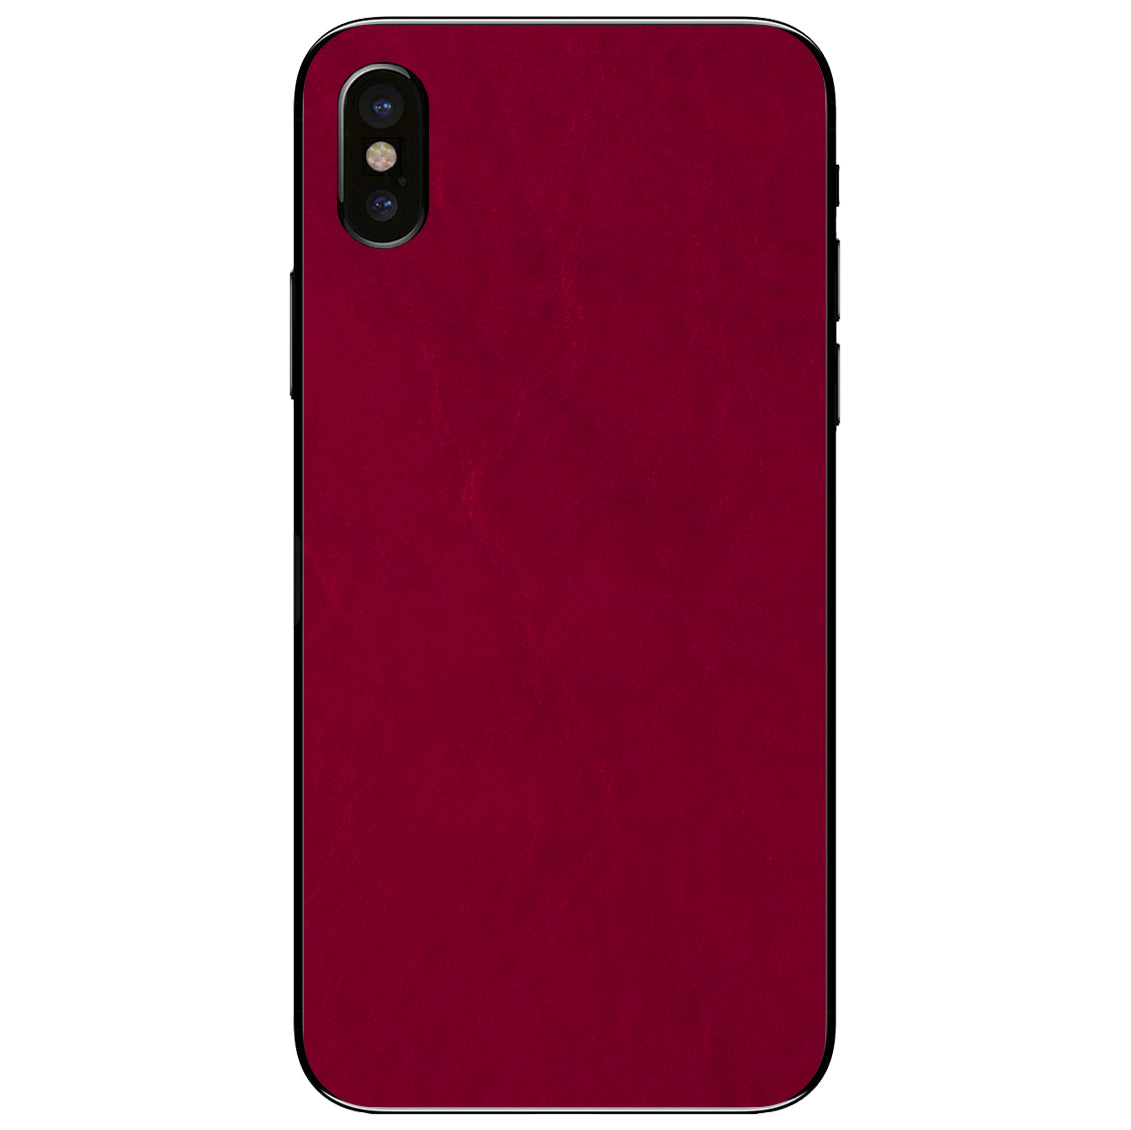 Crimson iPhone X Leather Skin